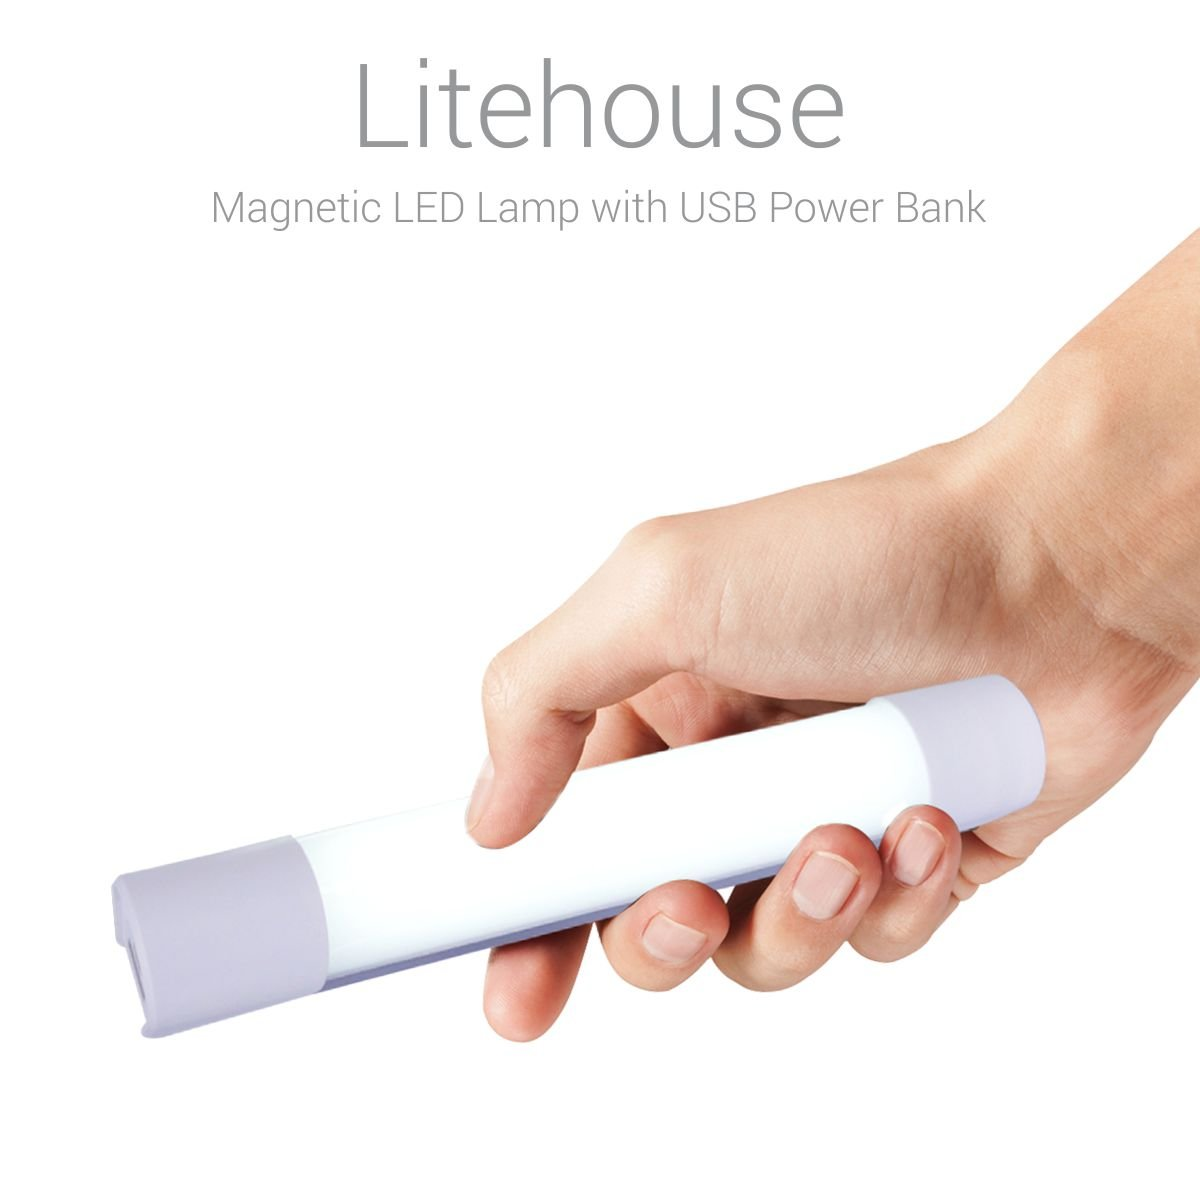 Portronics Litehouse Magnetic LED Lamp with